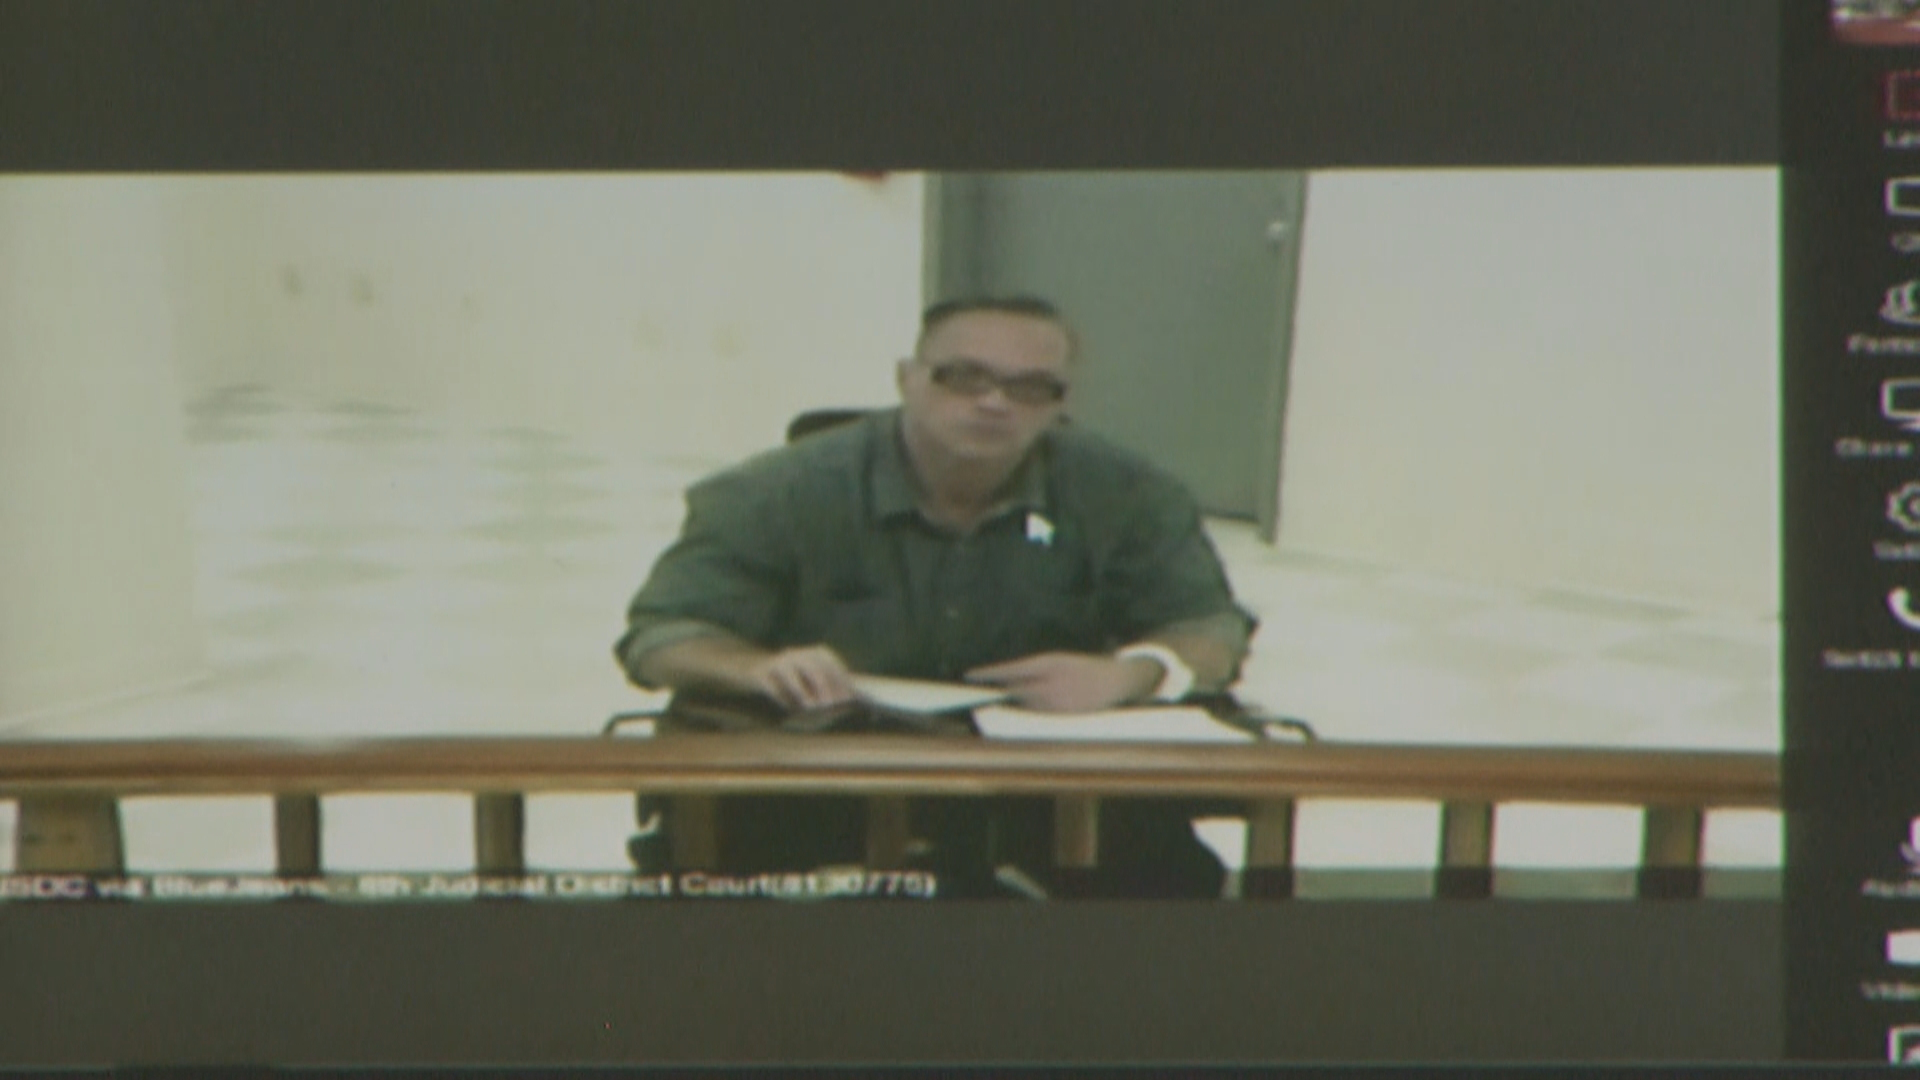 Scott Dozier appears via teleconference for his court hearing Wednesday, November 8, 2017, at the Regional Justice Center. (KSNV)